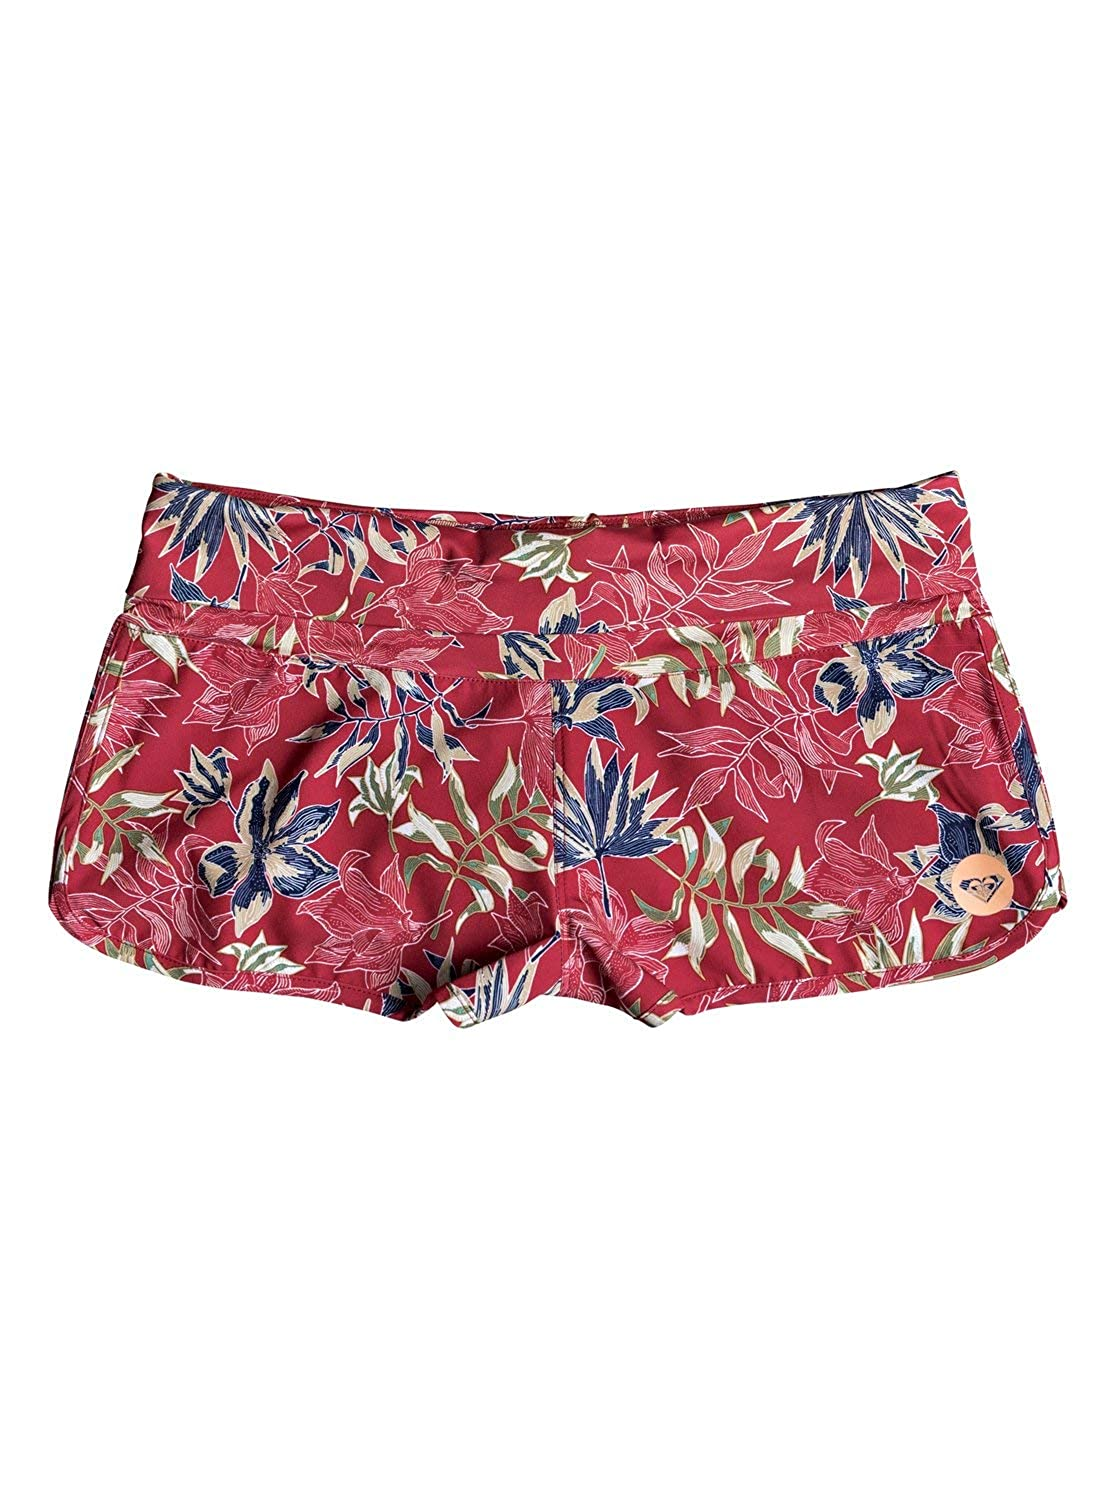 Roxy Women's Endless Summer Printed Boardshort